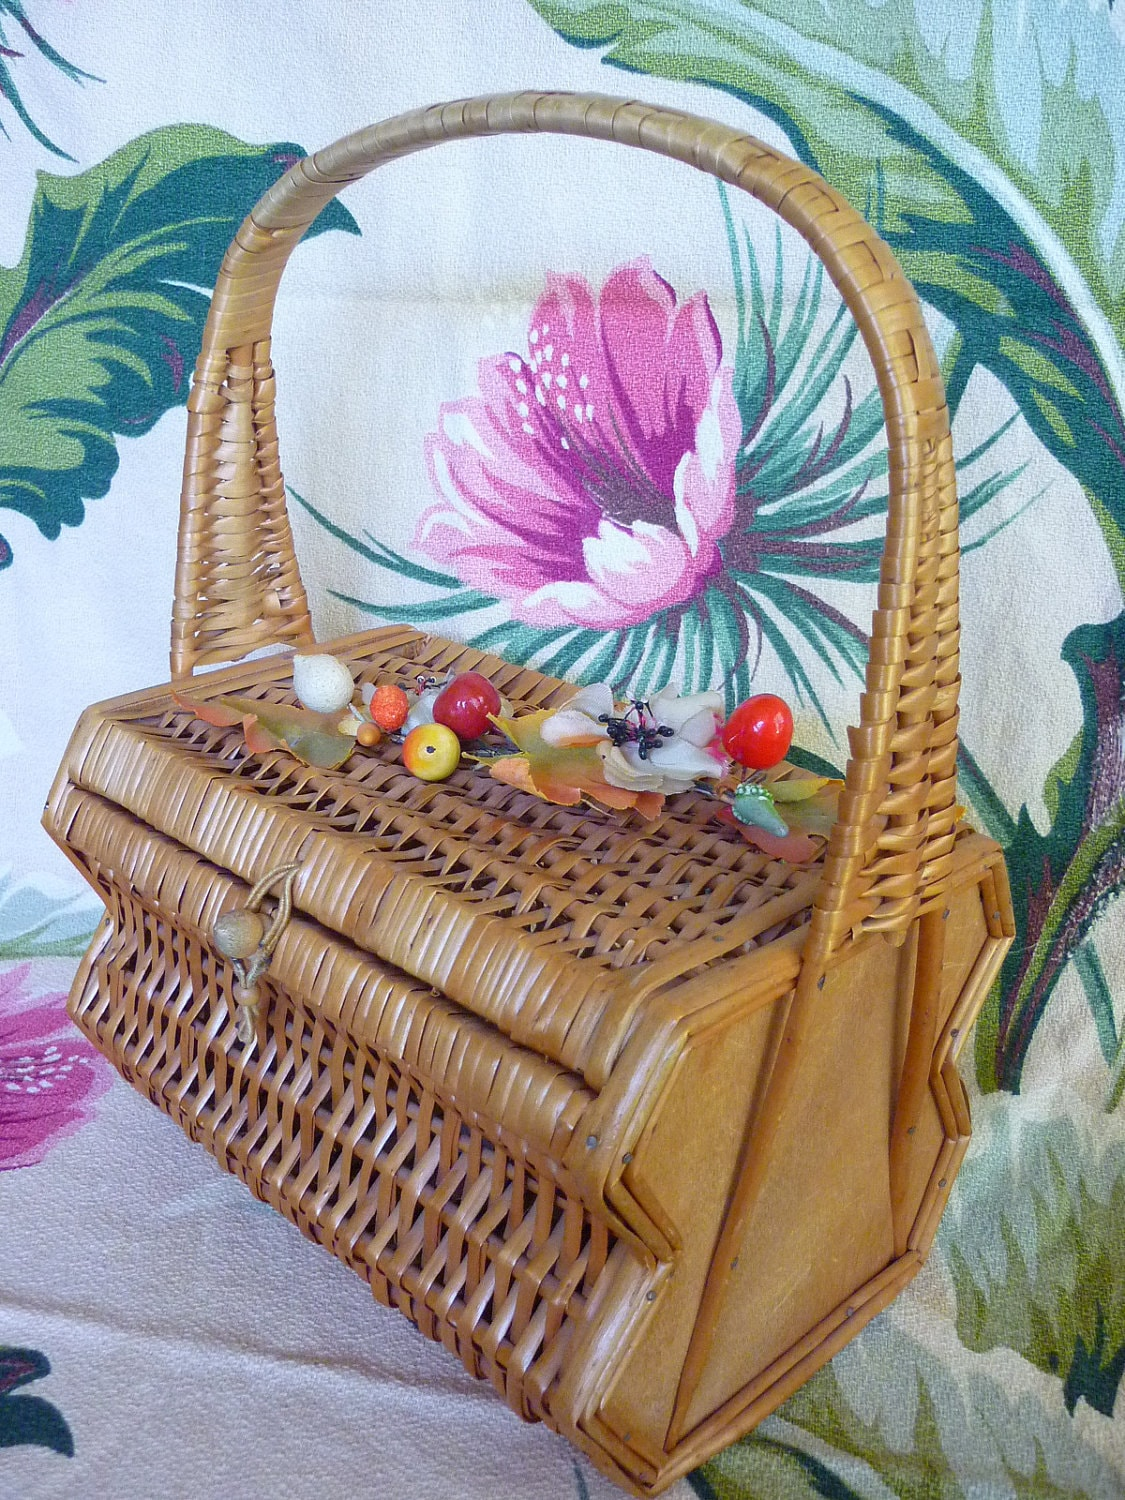 VTG 1950s Rattan Wicker Bamboo Basket Purse w Fruit - decotodiscovintage